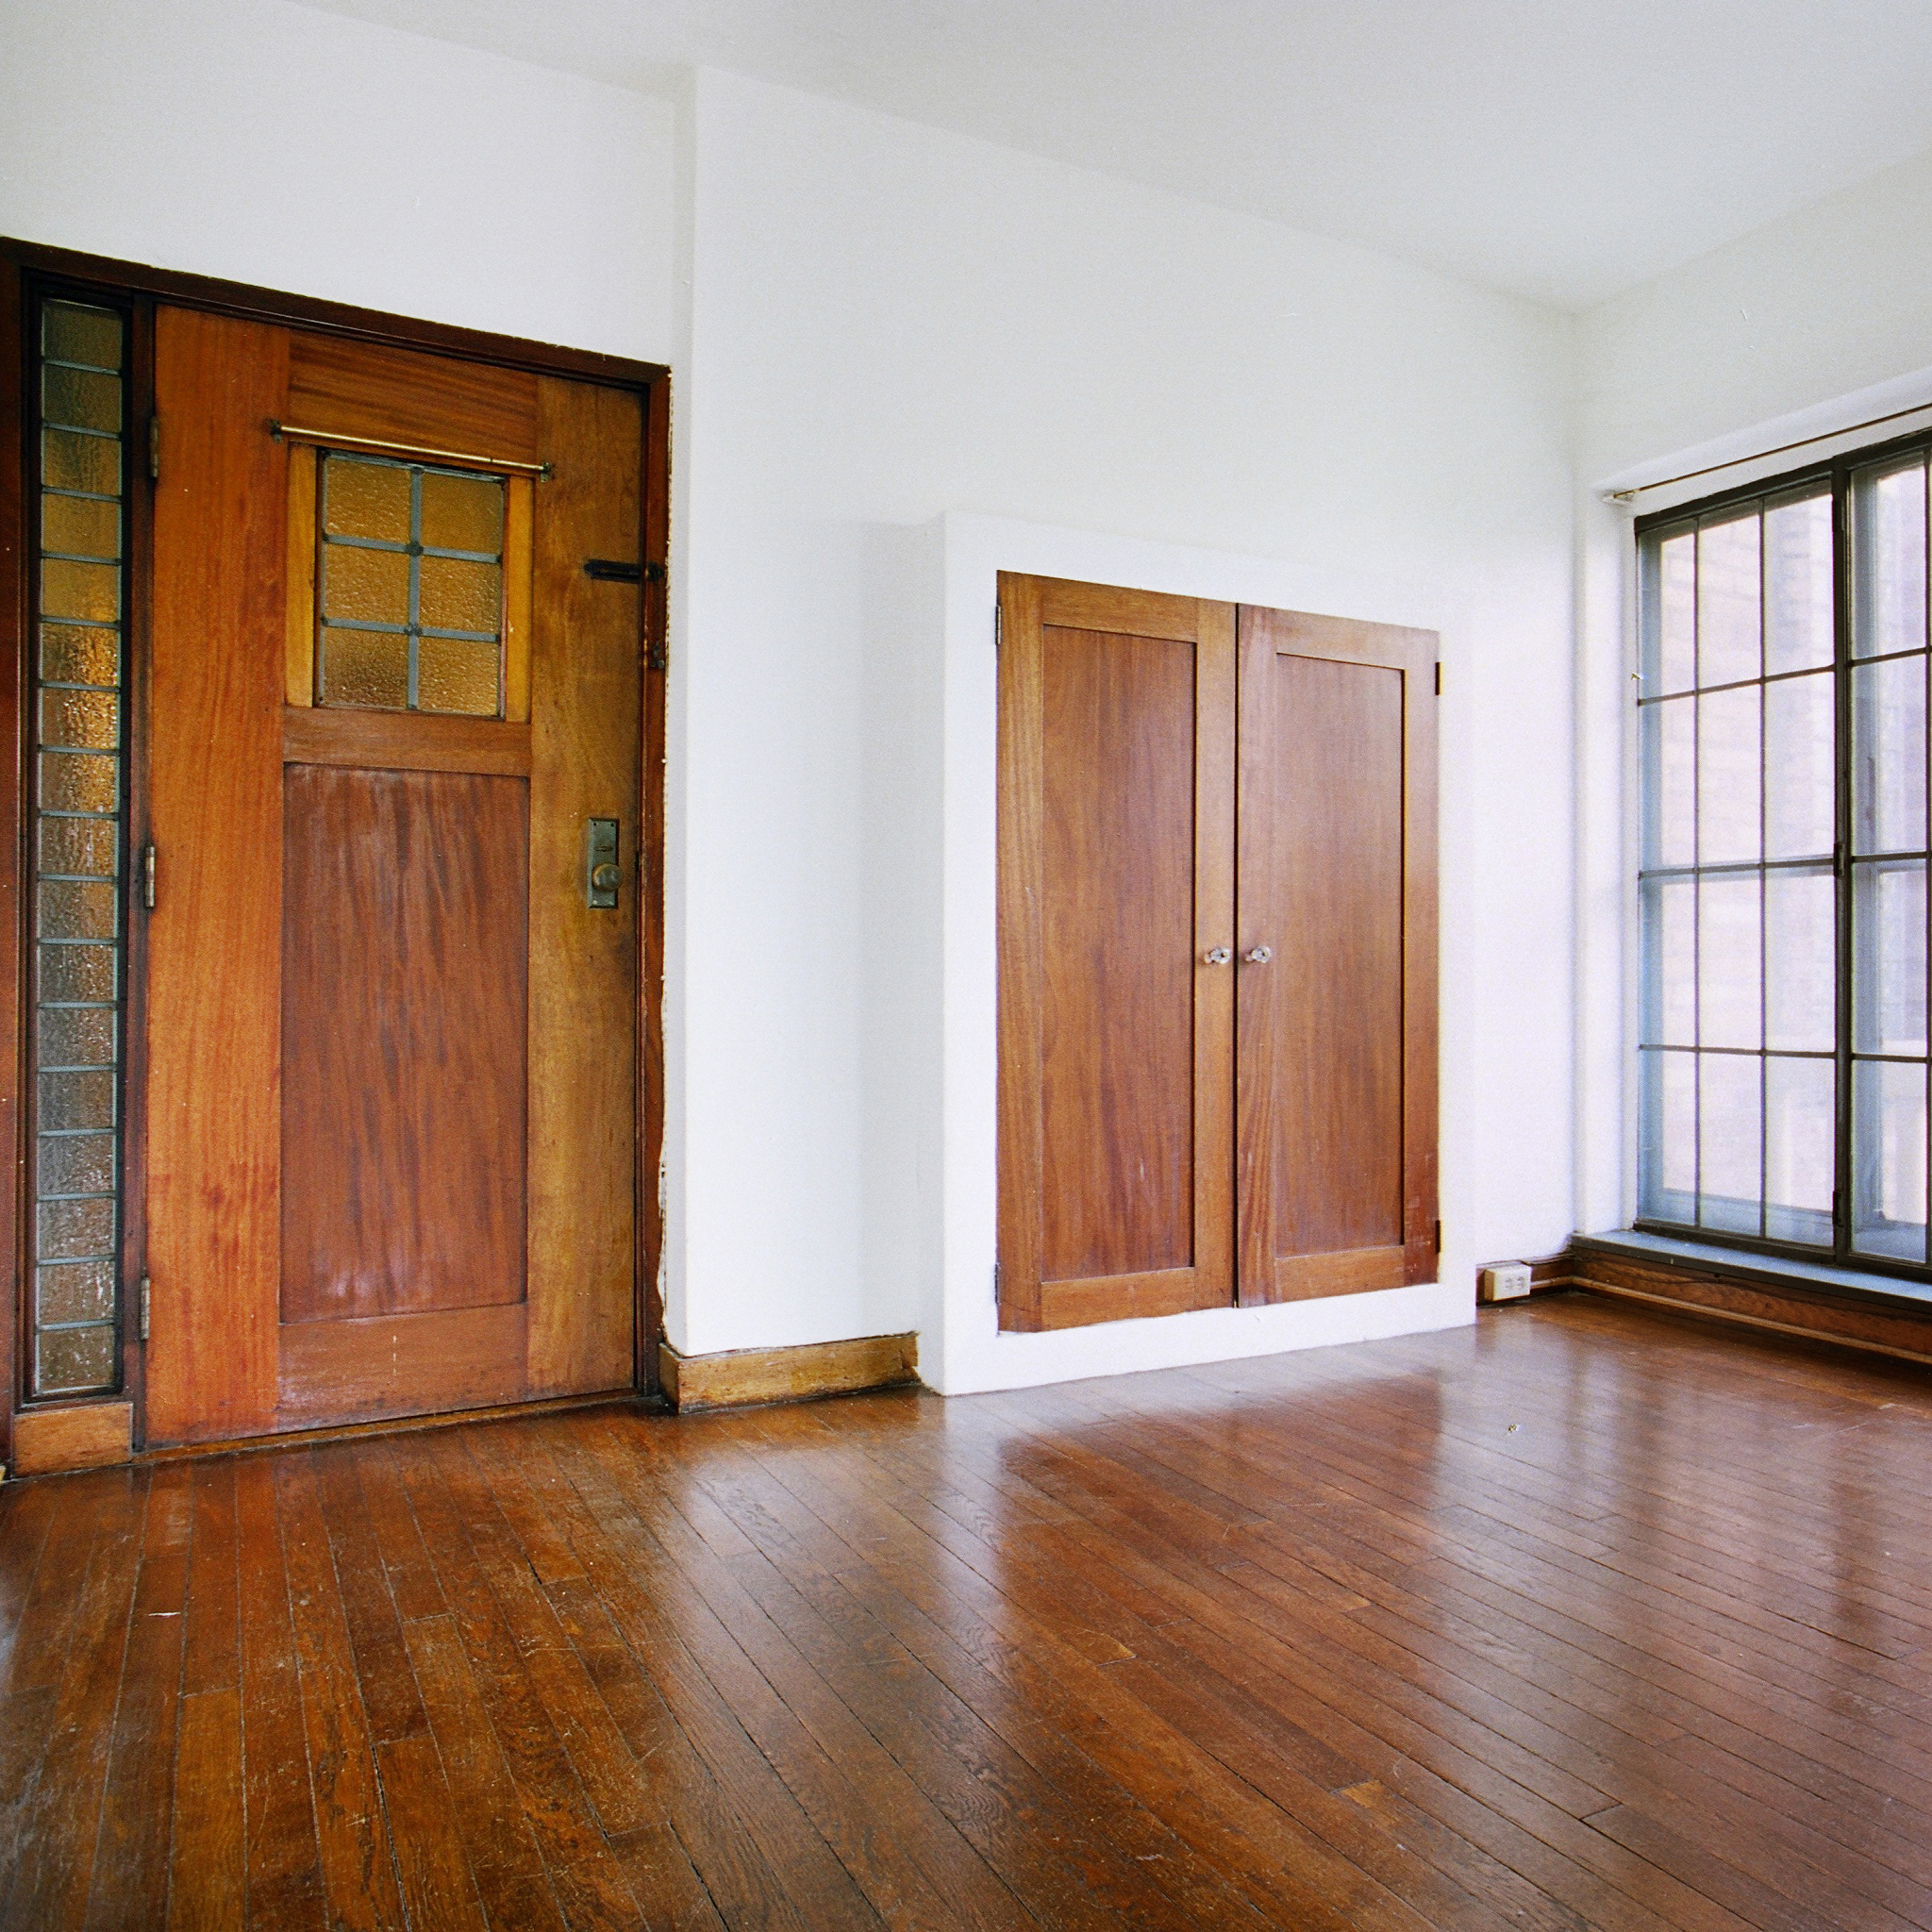 interior of 342 S. Highland Ave, Apt. 15A 5